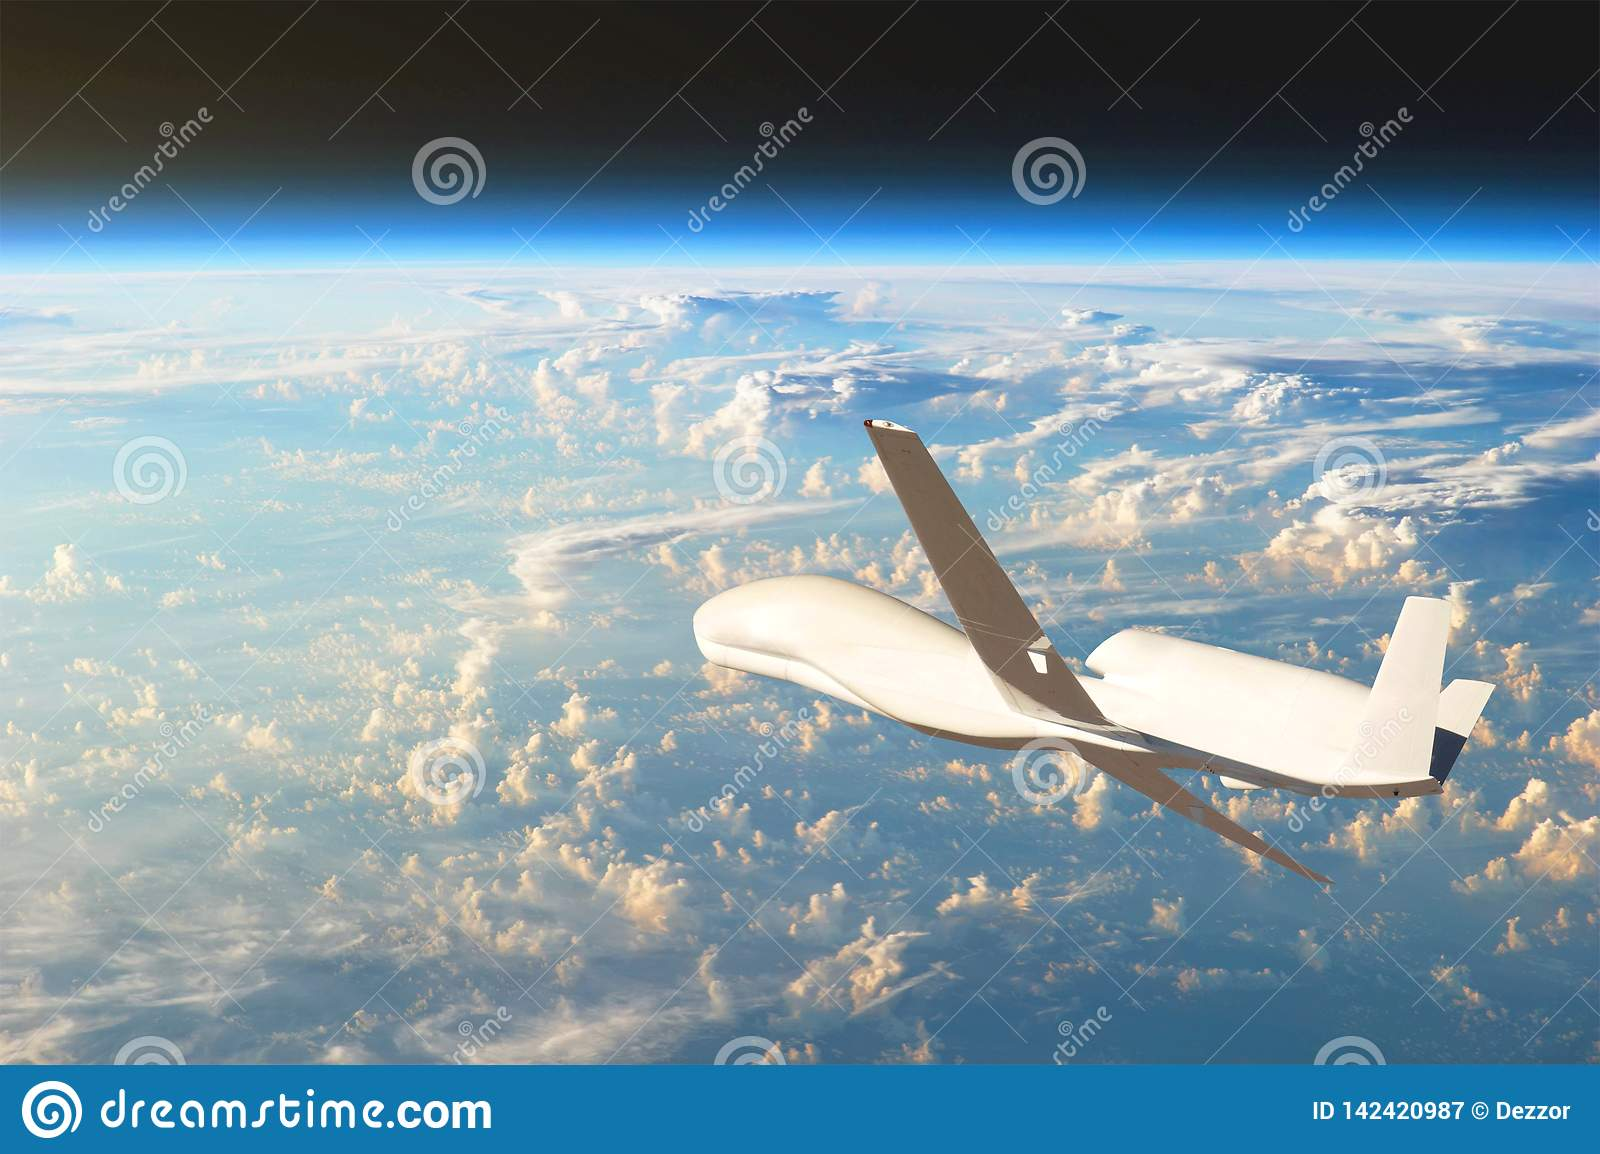 Unmanned aircraft flying in the upper atmosphere, the study of the gas shells of the planet Earth. Elements of this image